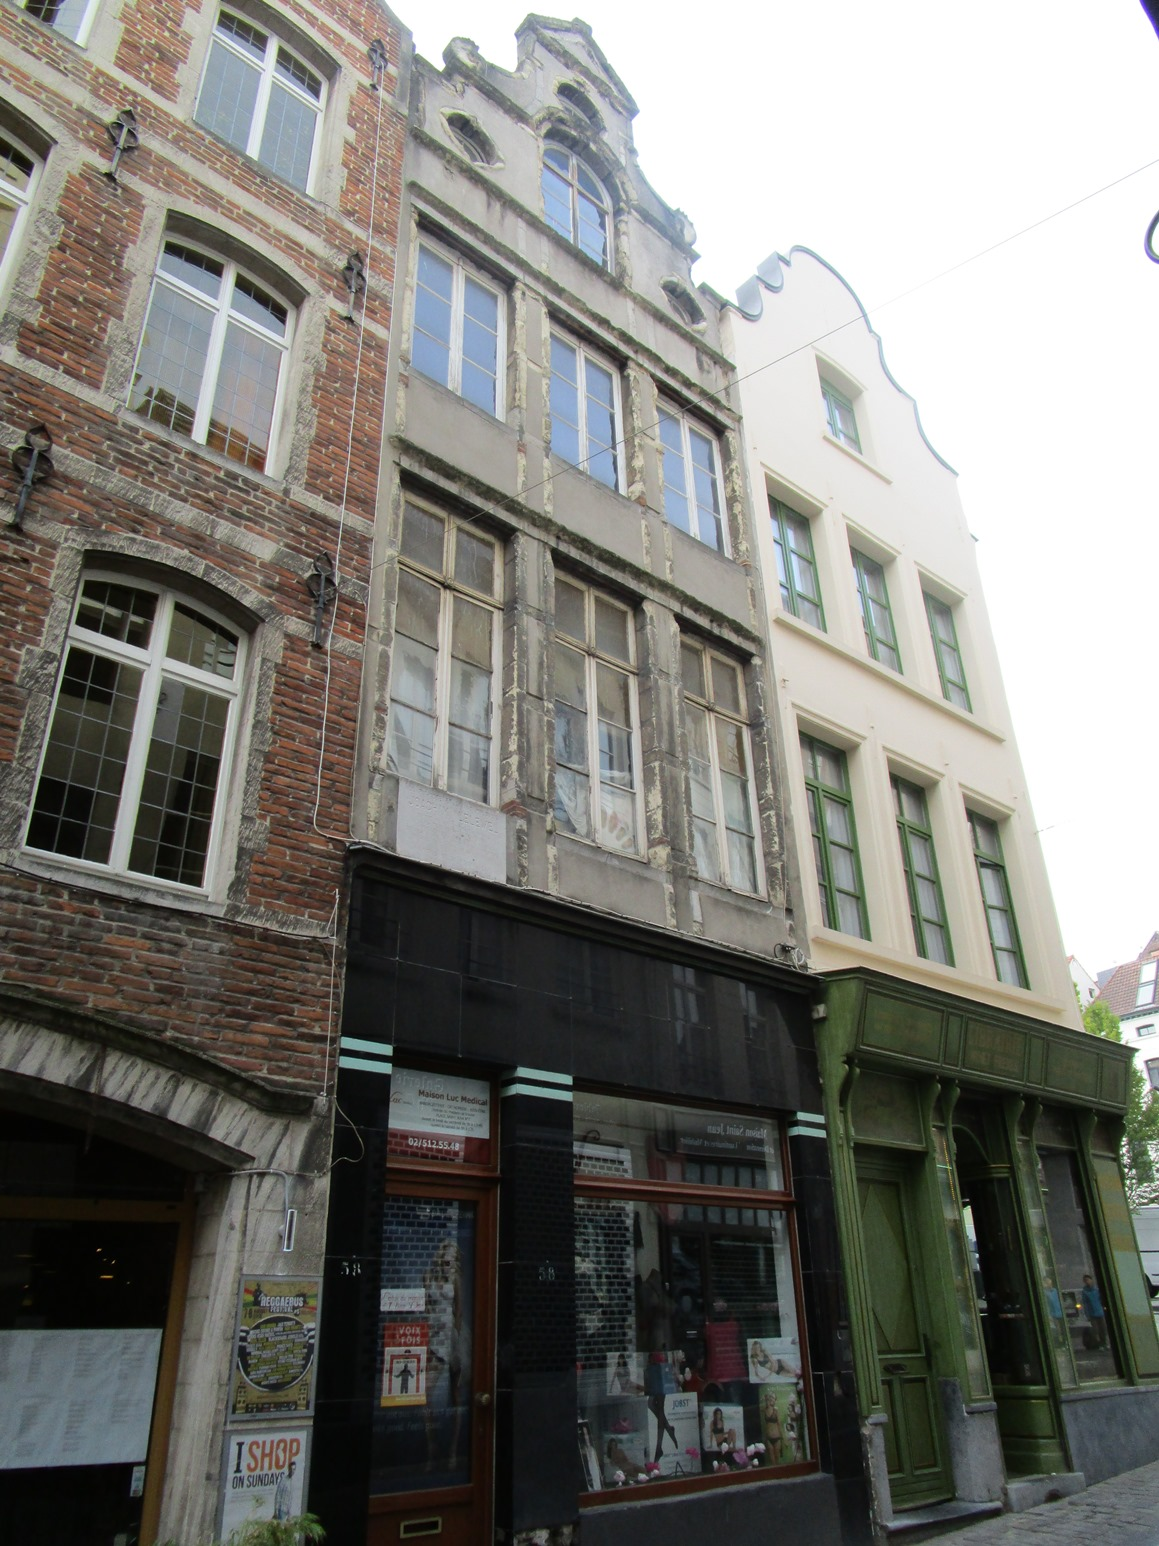 Rue des Eperonniers 58, 2015